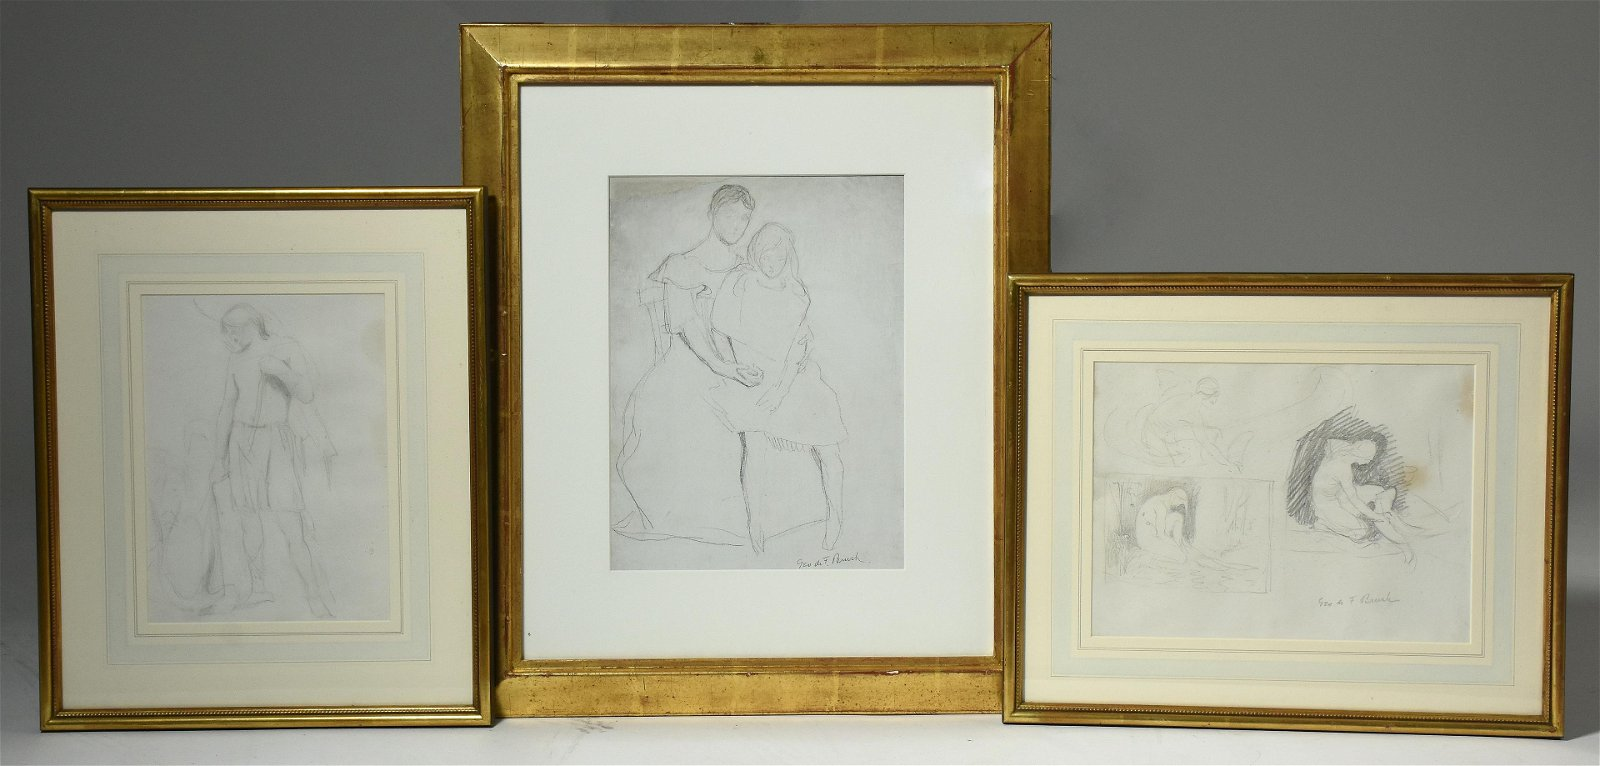 Three graphite sketches by George De Forest Brush